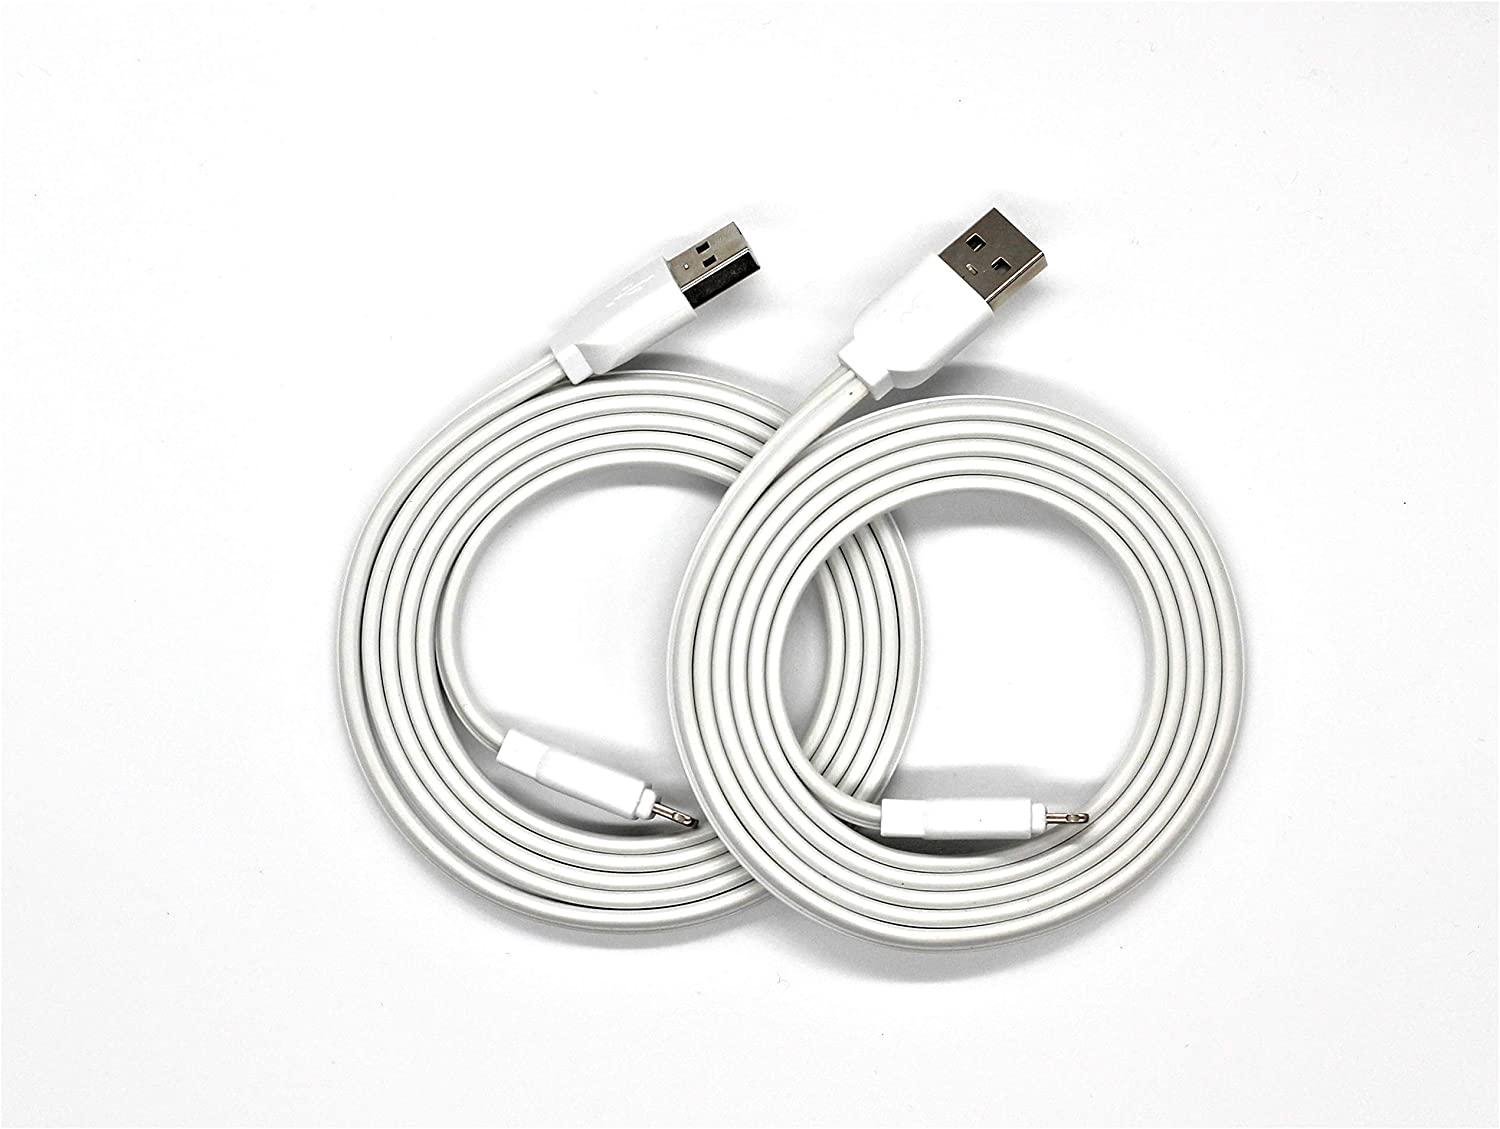 Mentiz Premium [2 Pack] Lightning (Apple Certified) Cable with Integrated Coilink System - (White: 1.2m/4ft) MFI Certified for iPhone 11 Pro 11 XS XR X 8 Plus 7 Plus 6 Plus 5s Airpods Pro Beats Solo